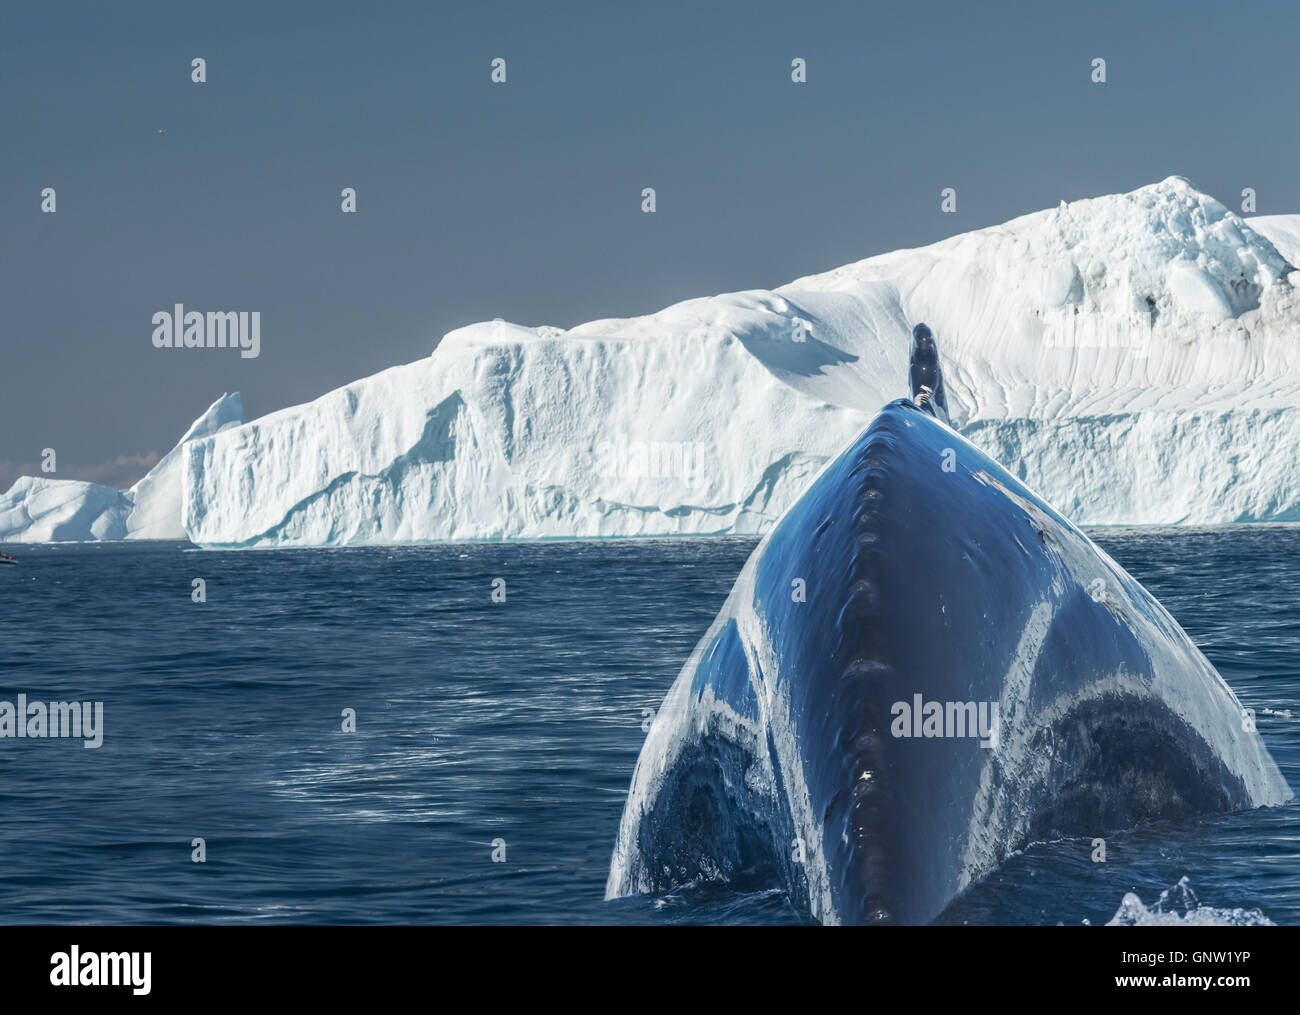 Humpback whales merrily feeding in the rich glacial waters among giant icebergs at the mouth of the Icefjord, Greenland - Stock Image